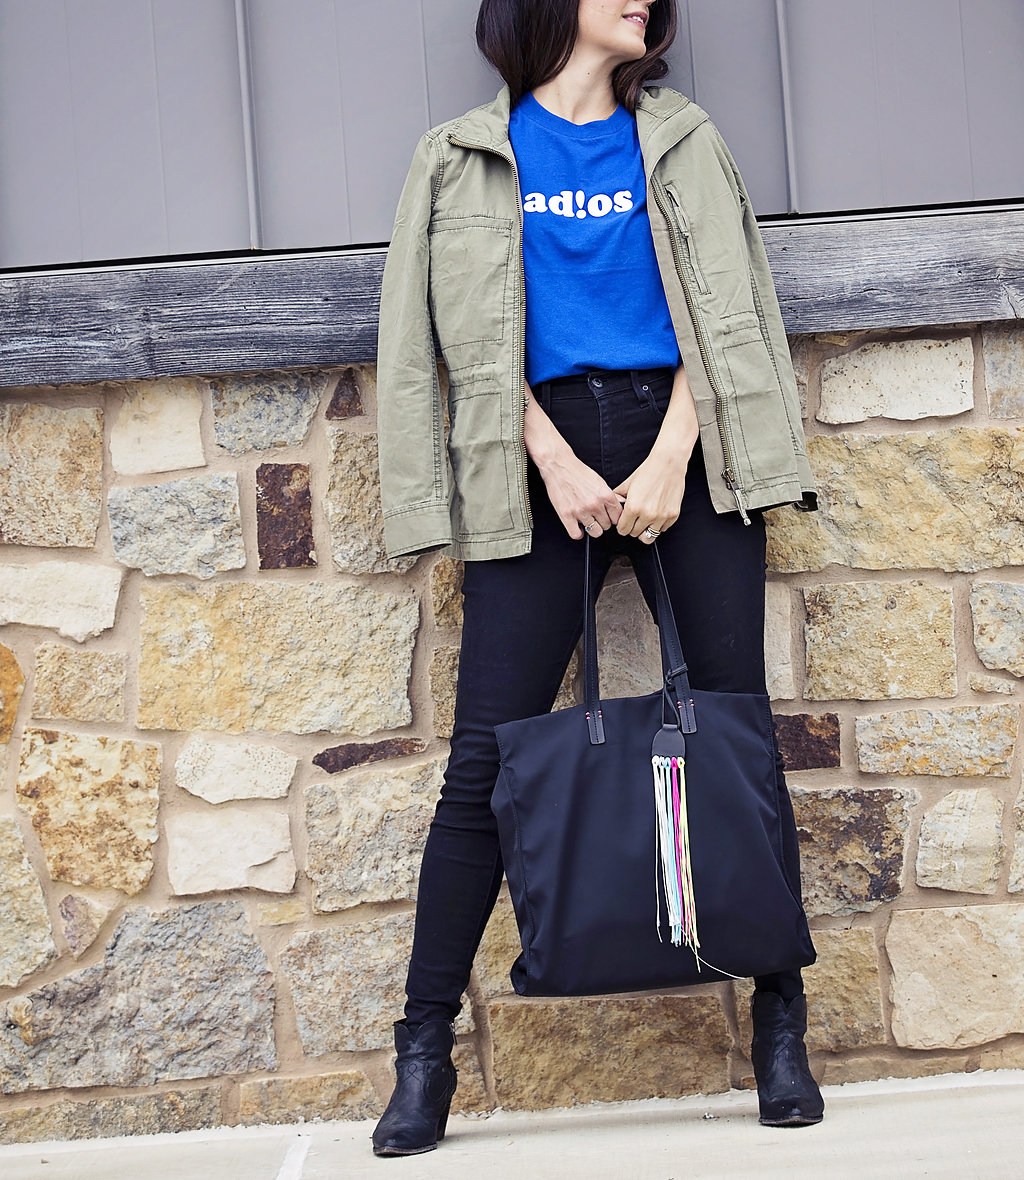 the motherchic wearing adios graphic tee and madewell military jacket